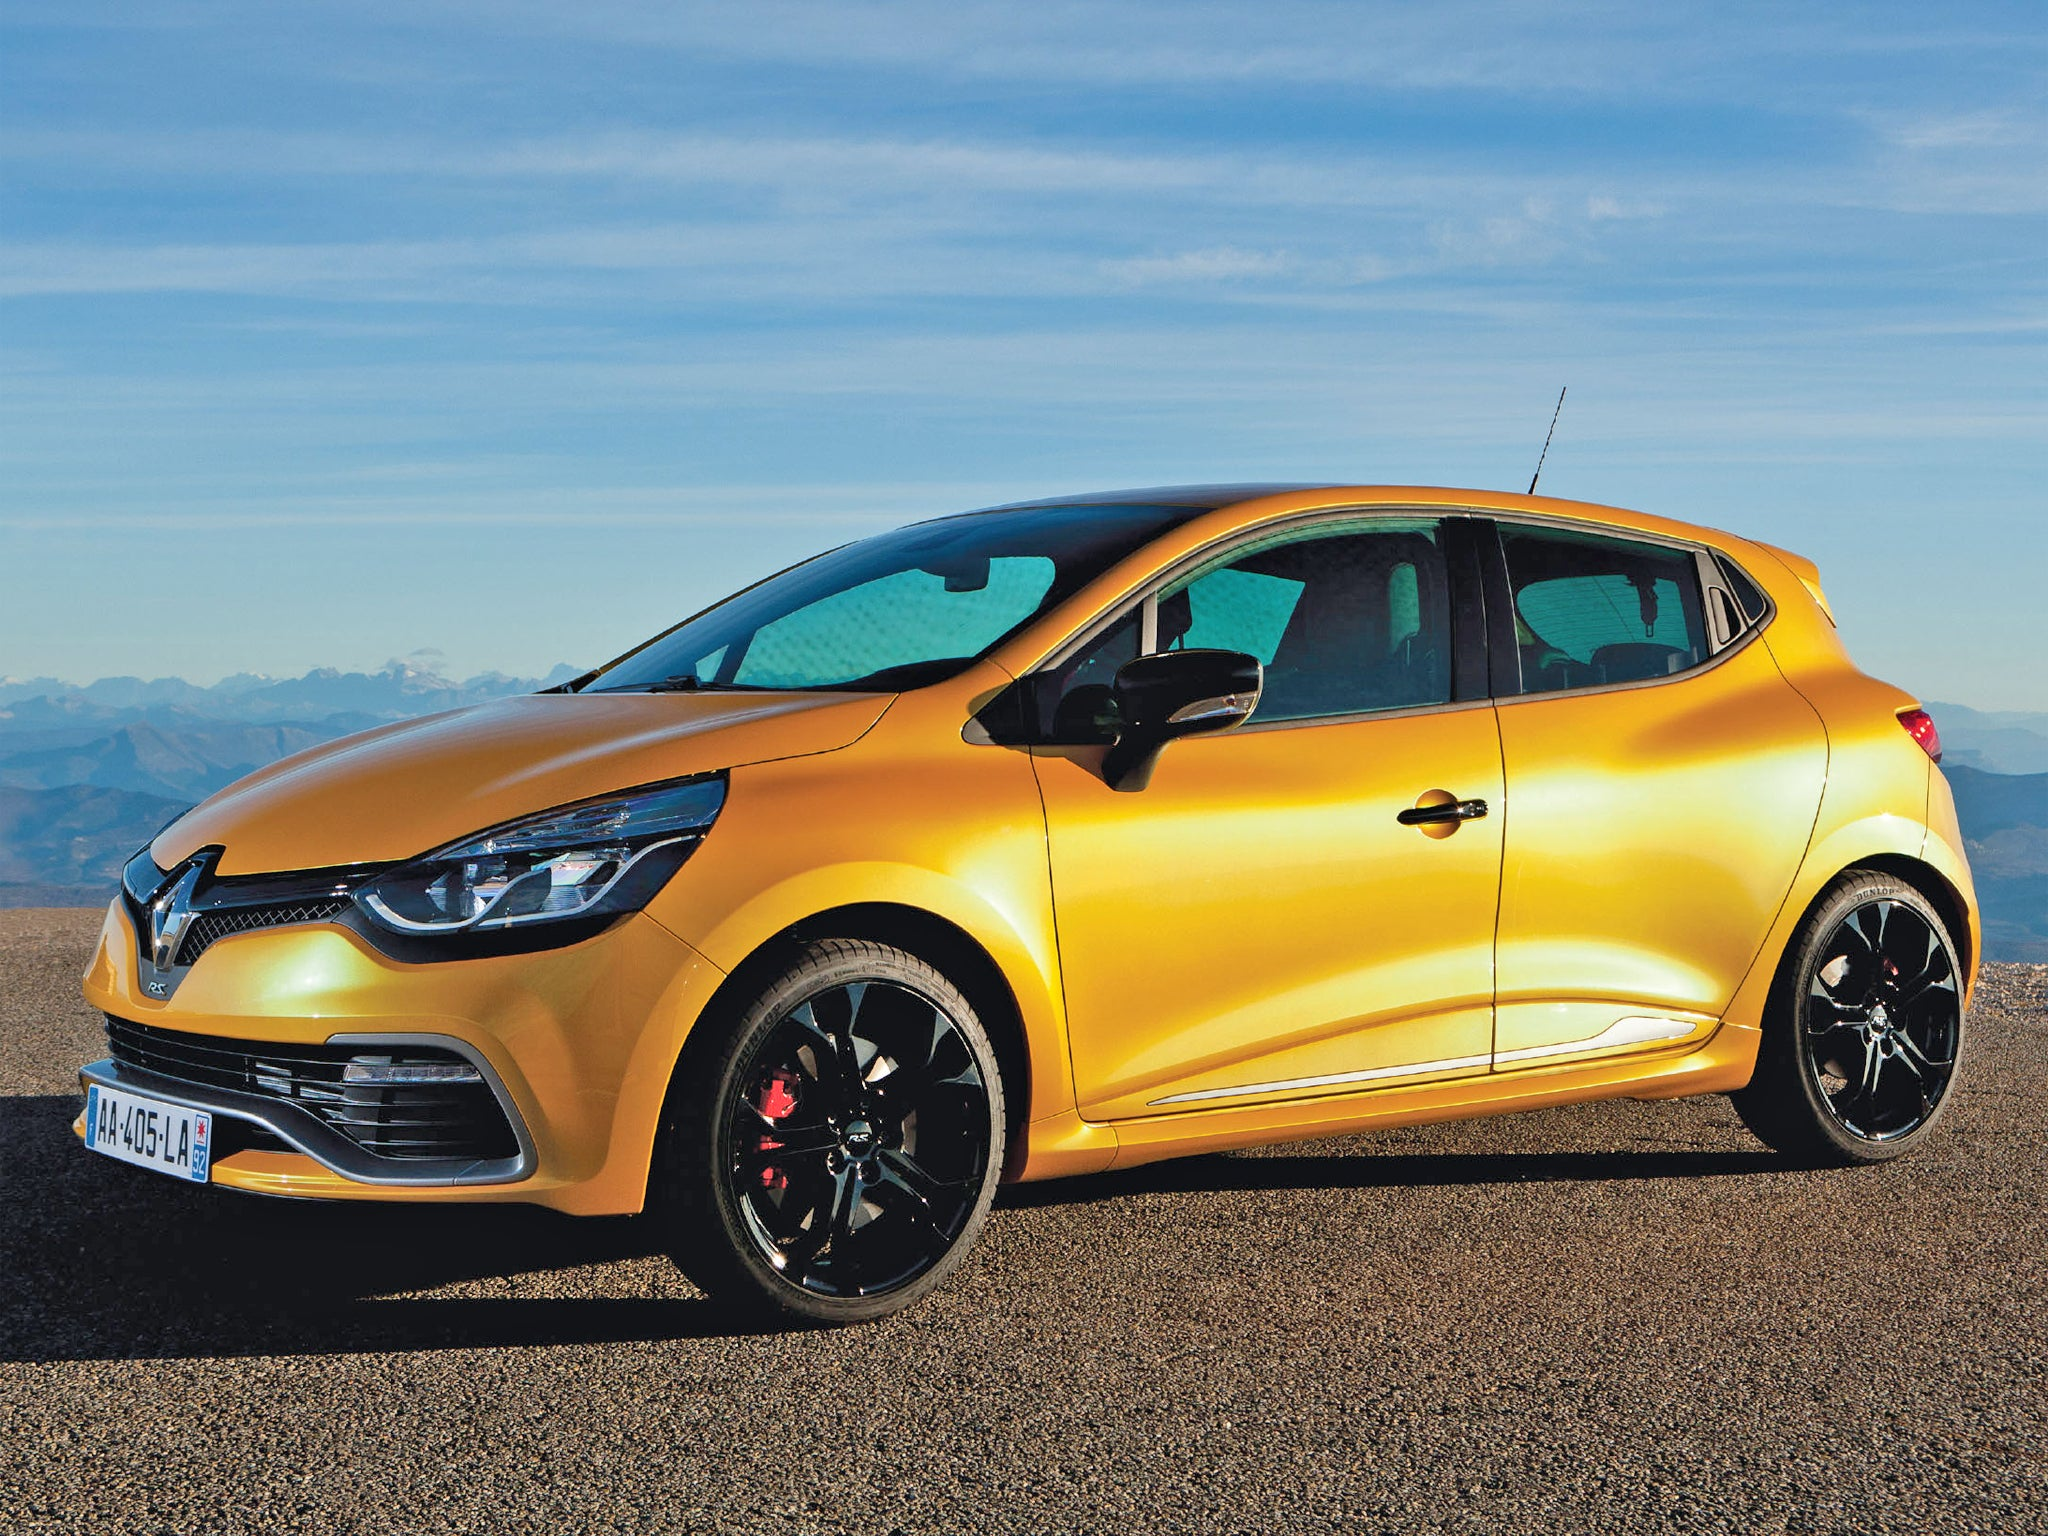 motoring review renault clio rs 200 turbo the independent. Black Bedroom Furniture Sets. Home Design Ideas